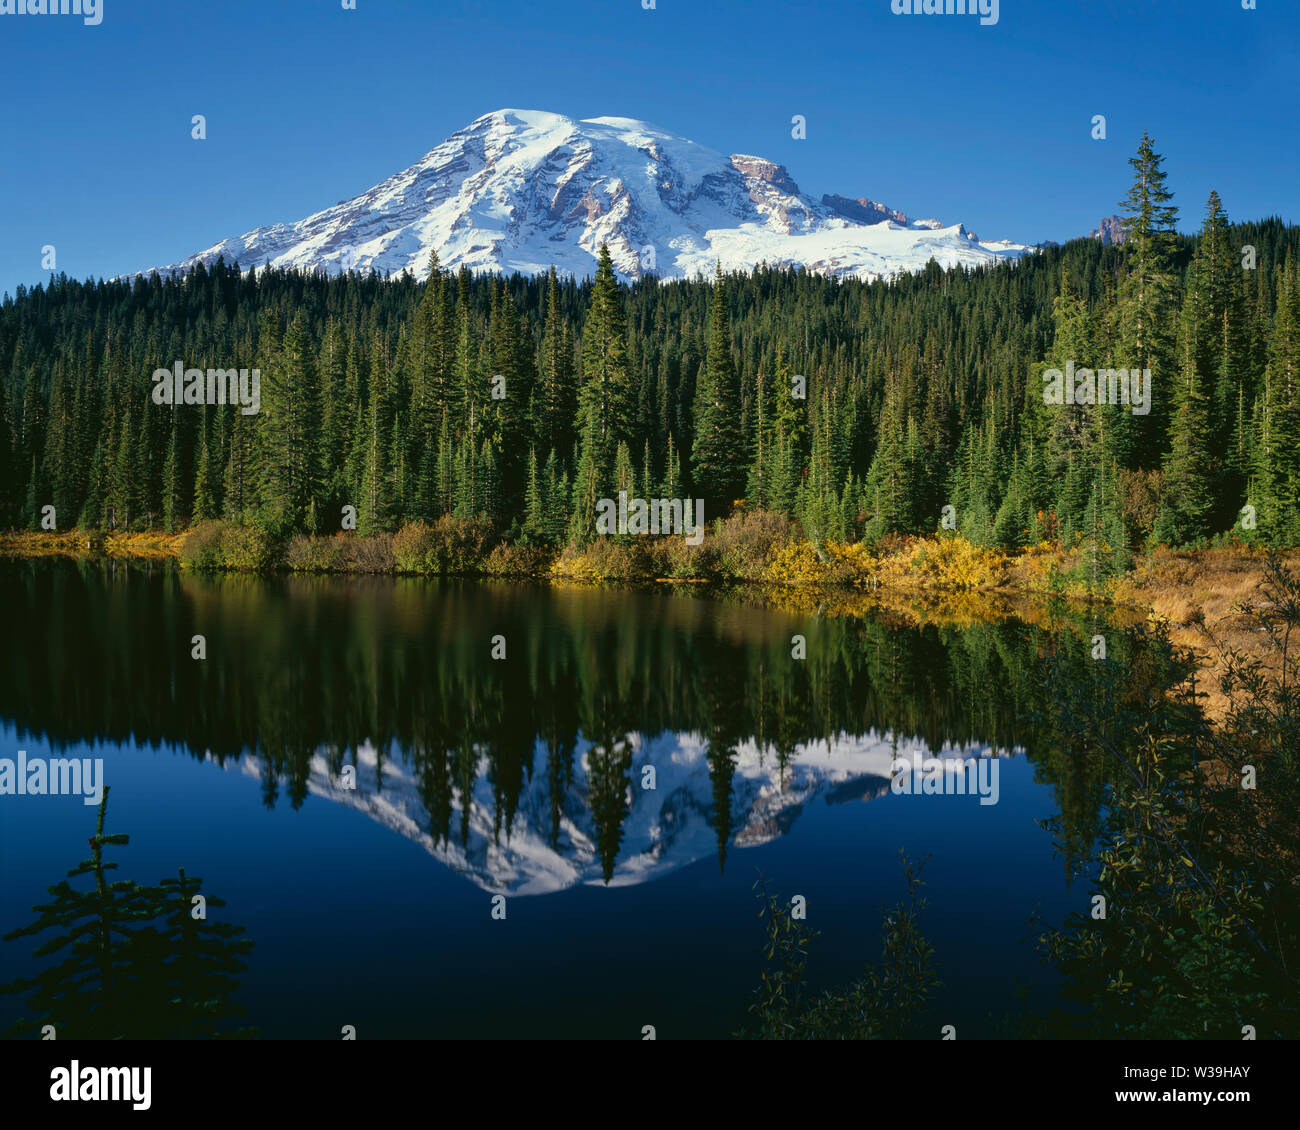 USA, Washington, Mt. Rainier National Park, Mt. Rainier with fresh autumn snow and fall-colored willows and huckleberries reflects in Reflection Lake. - Stock Image